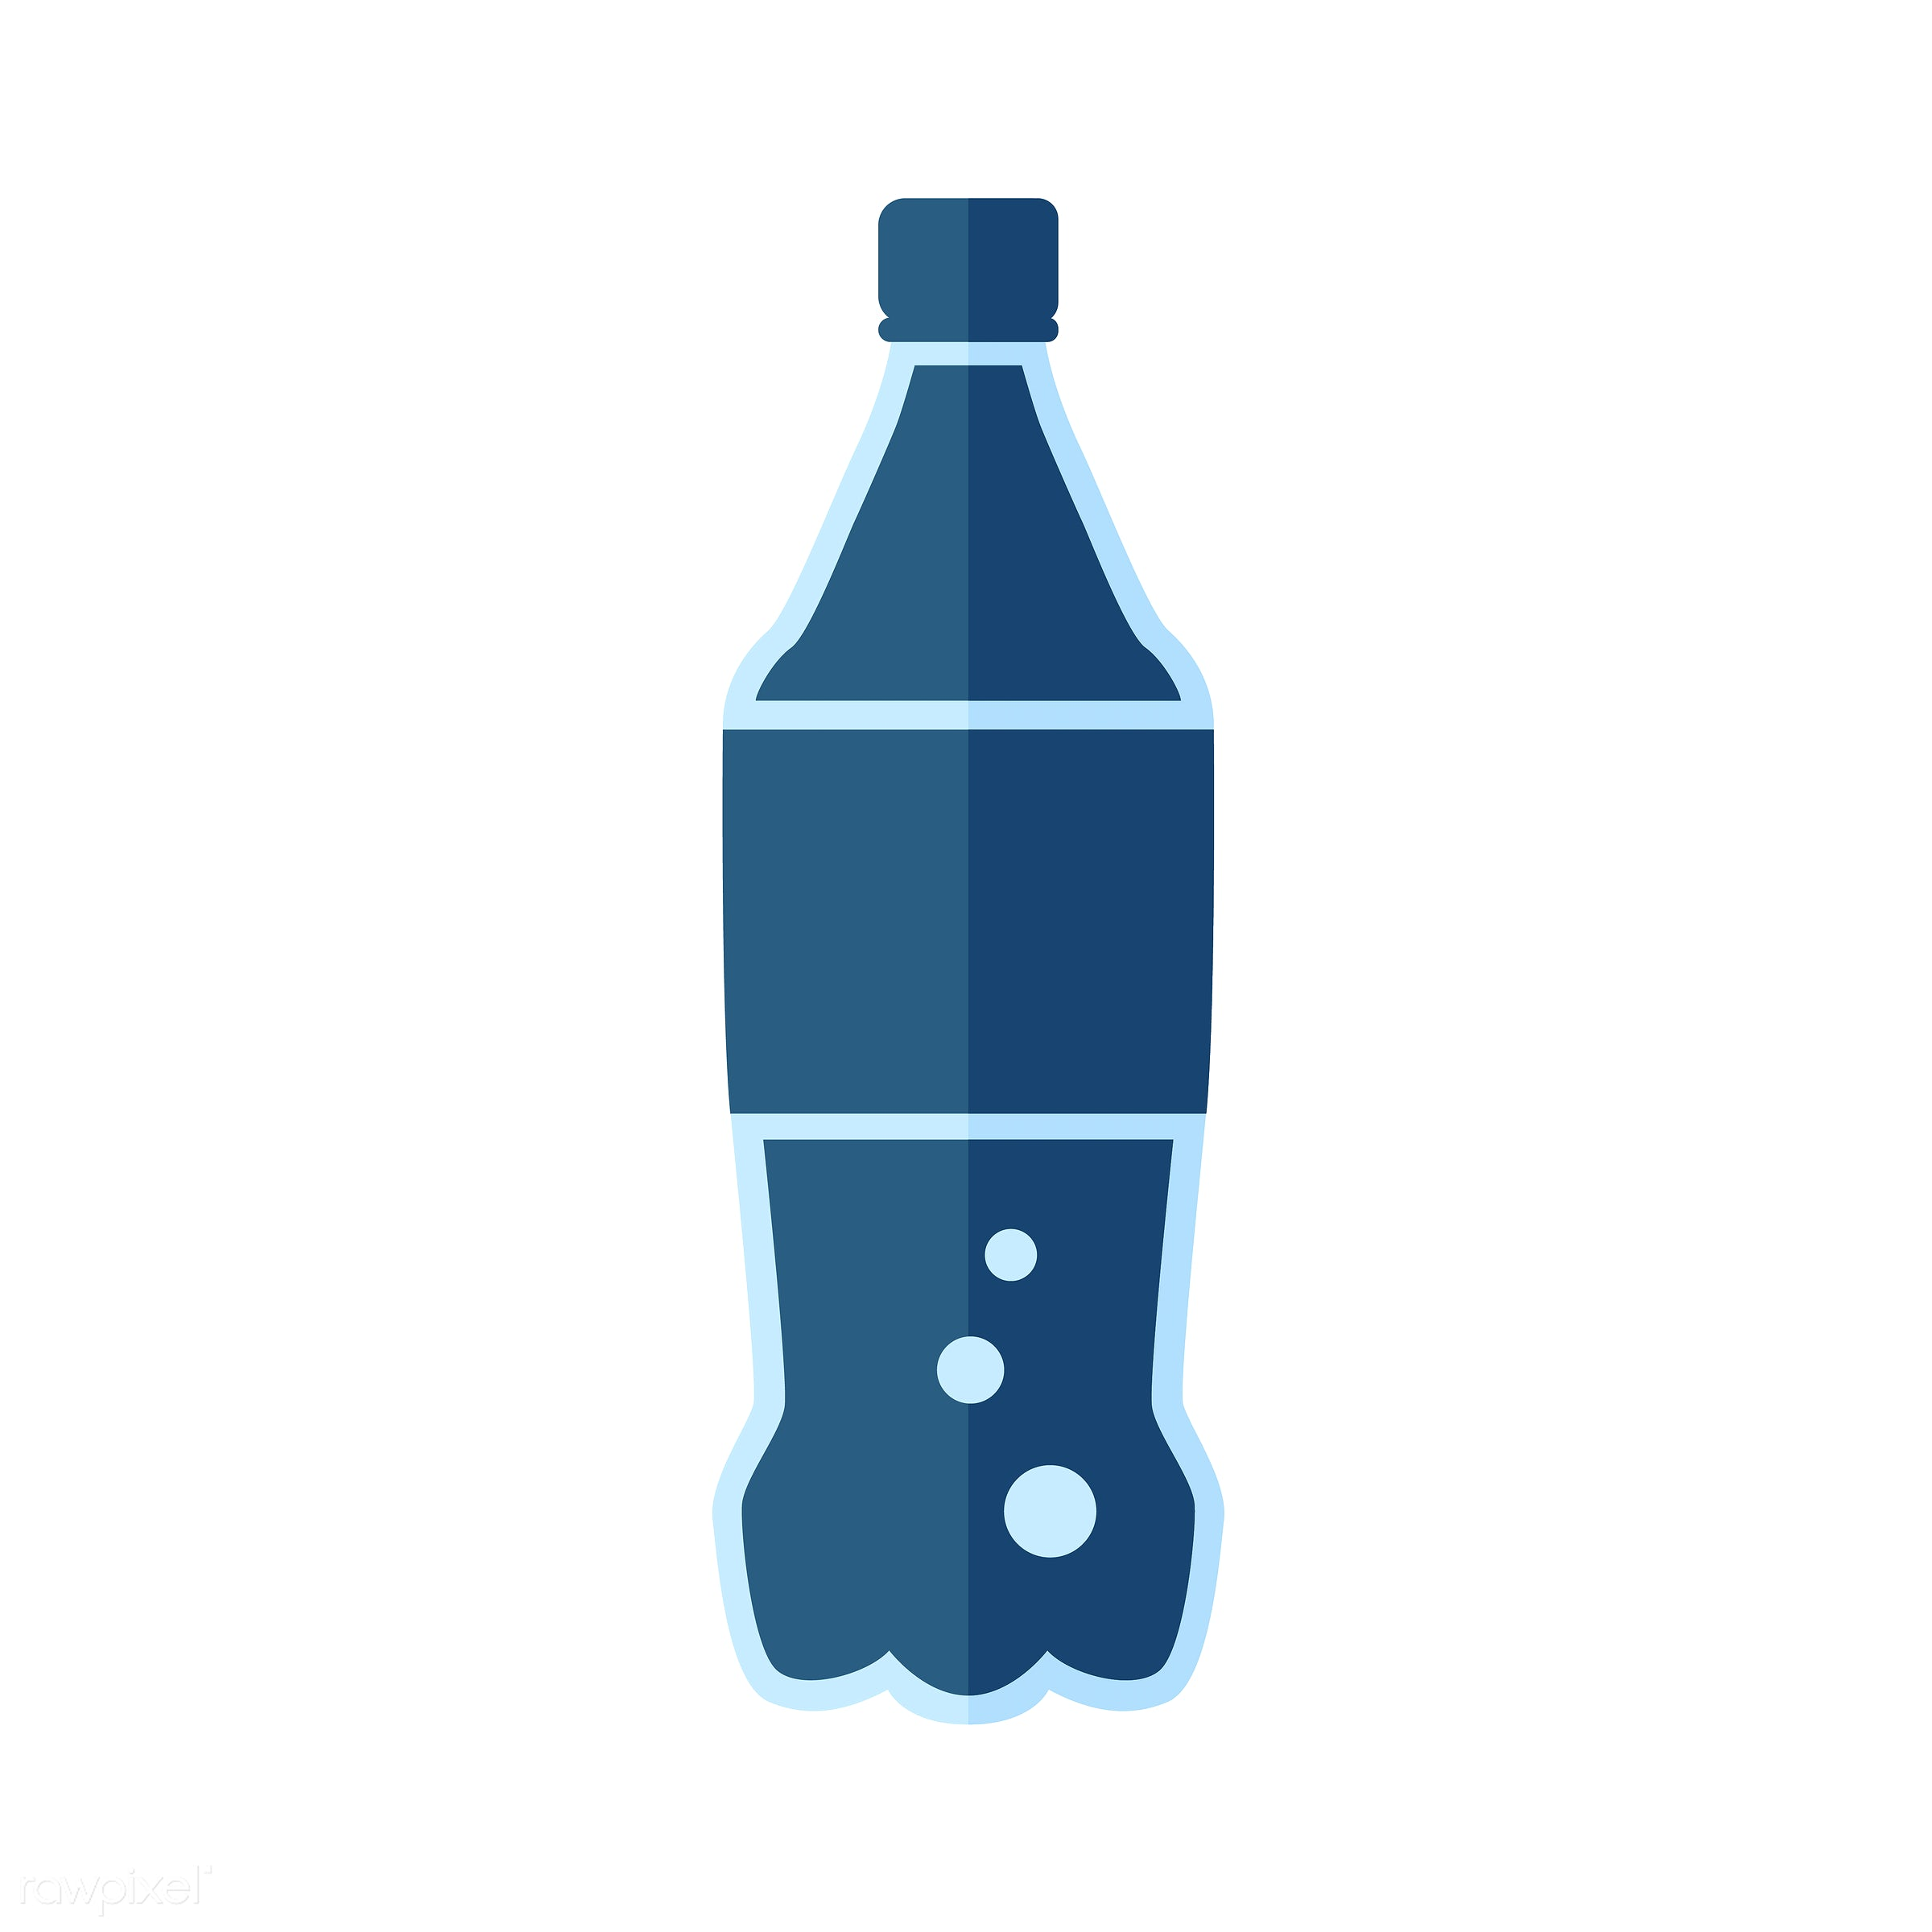 Soda bottle vector - vector, graphic, illustration, icon, symbol, colorful, cute, drink, beverage, water, soda, bottle, soda...